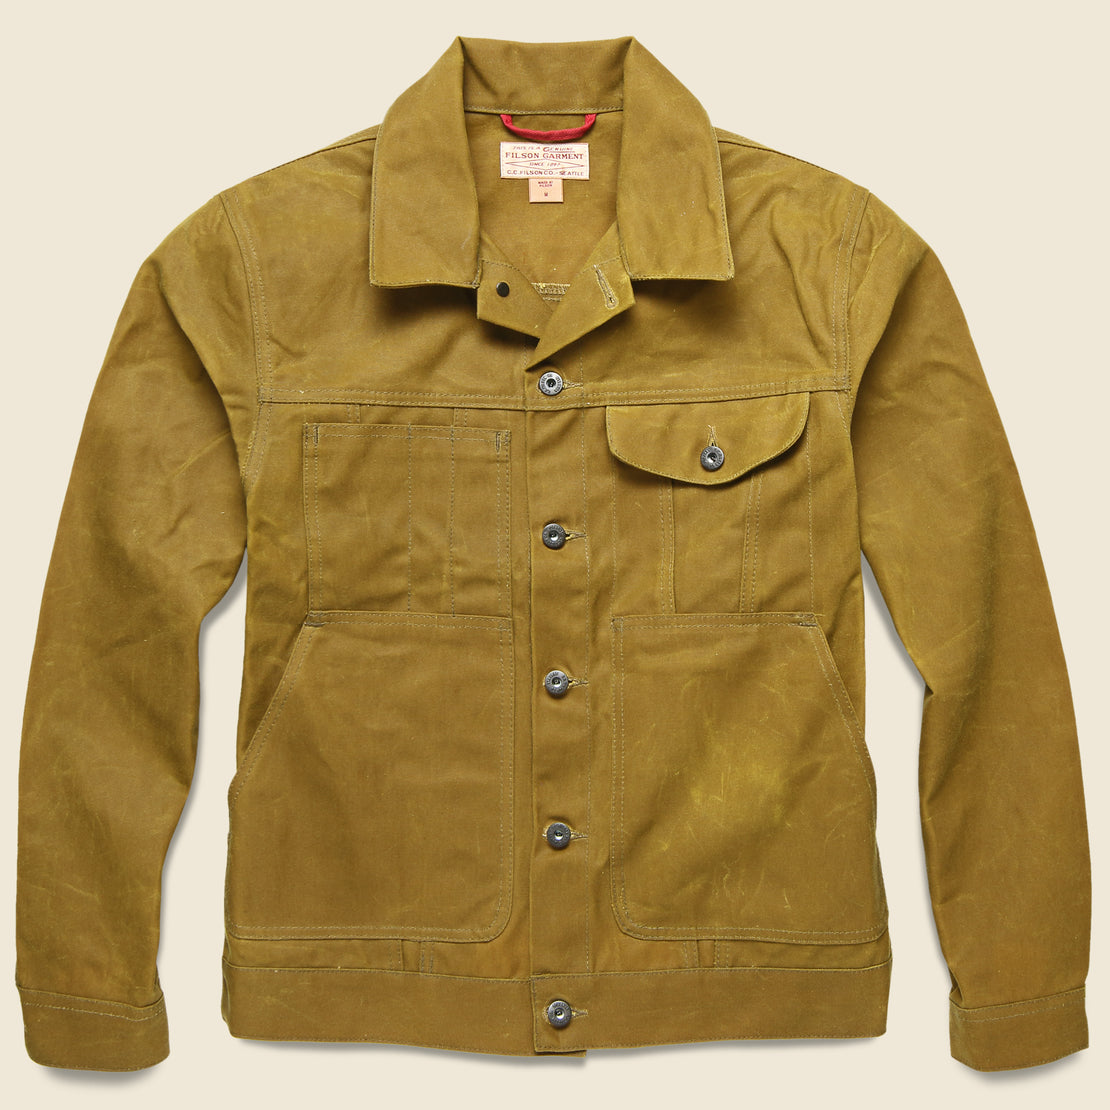 Filson Waxed Short Cruiser Jacket - Tan